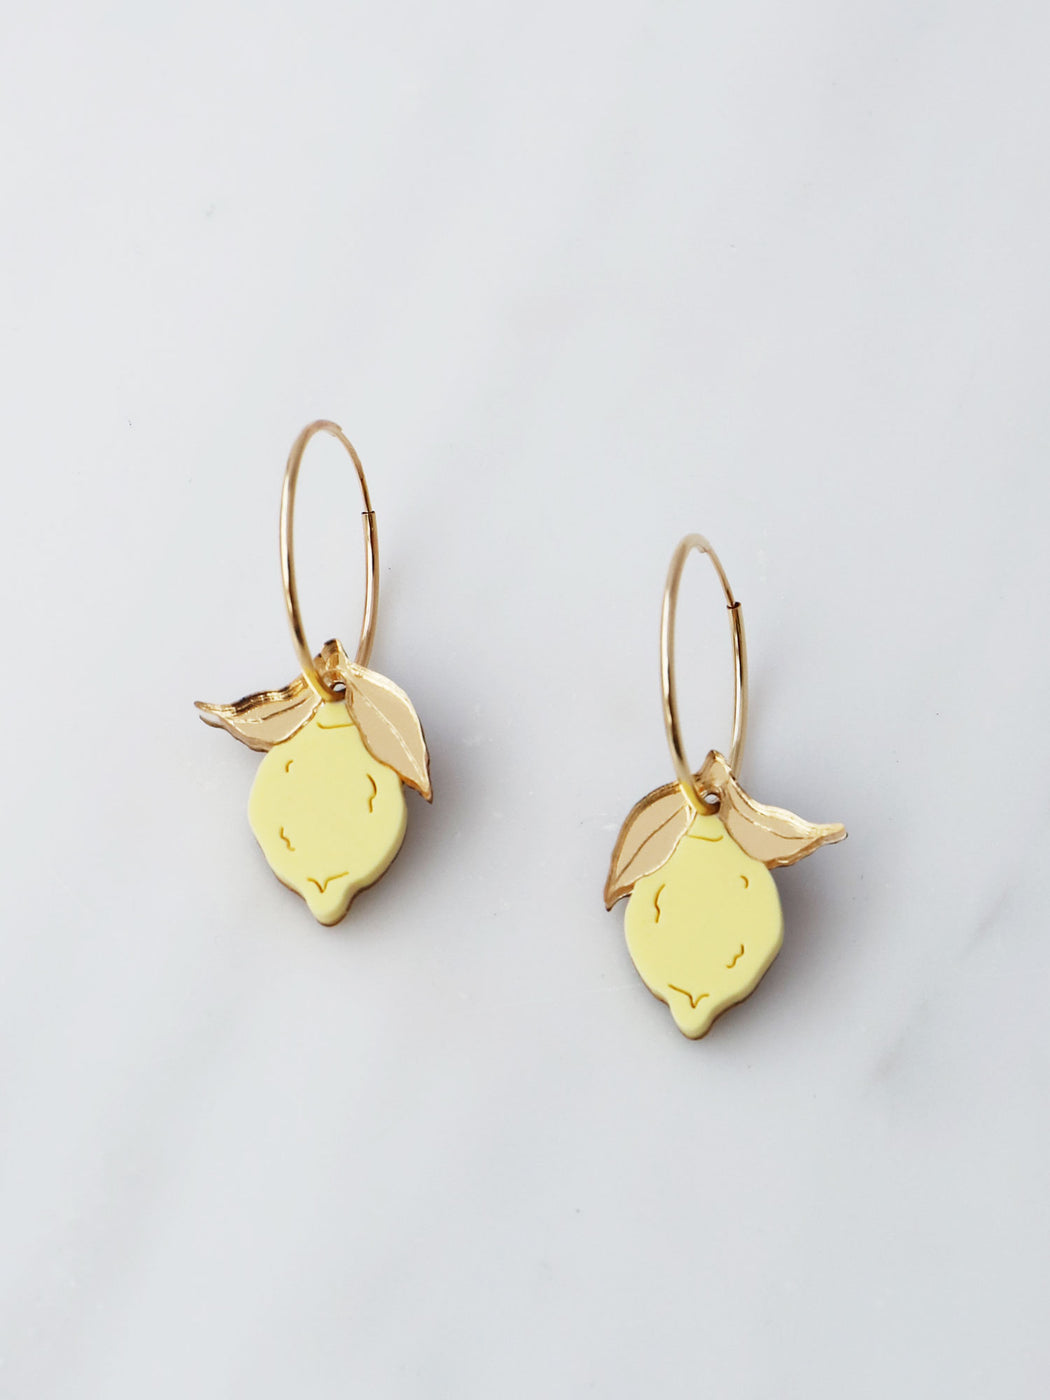 Mini Lemon Hoops. Statement jewellery, handmade in the U.K. by Wolf & Moon.r